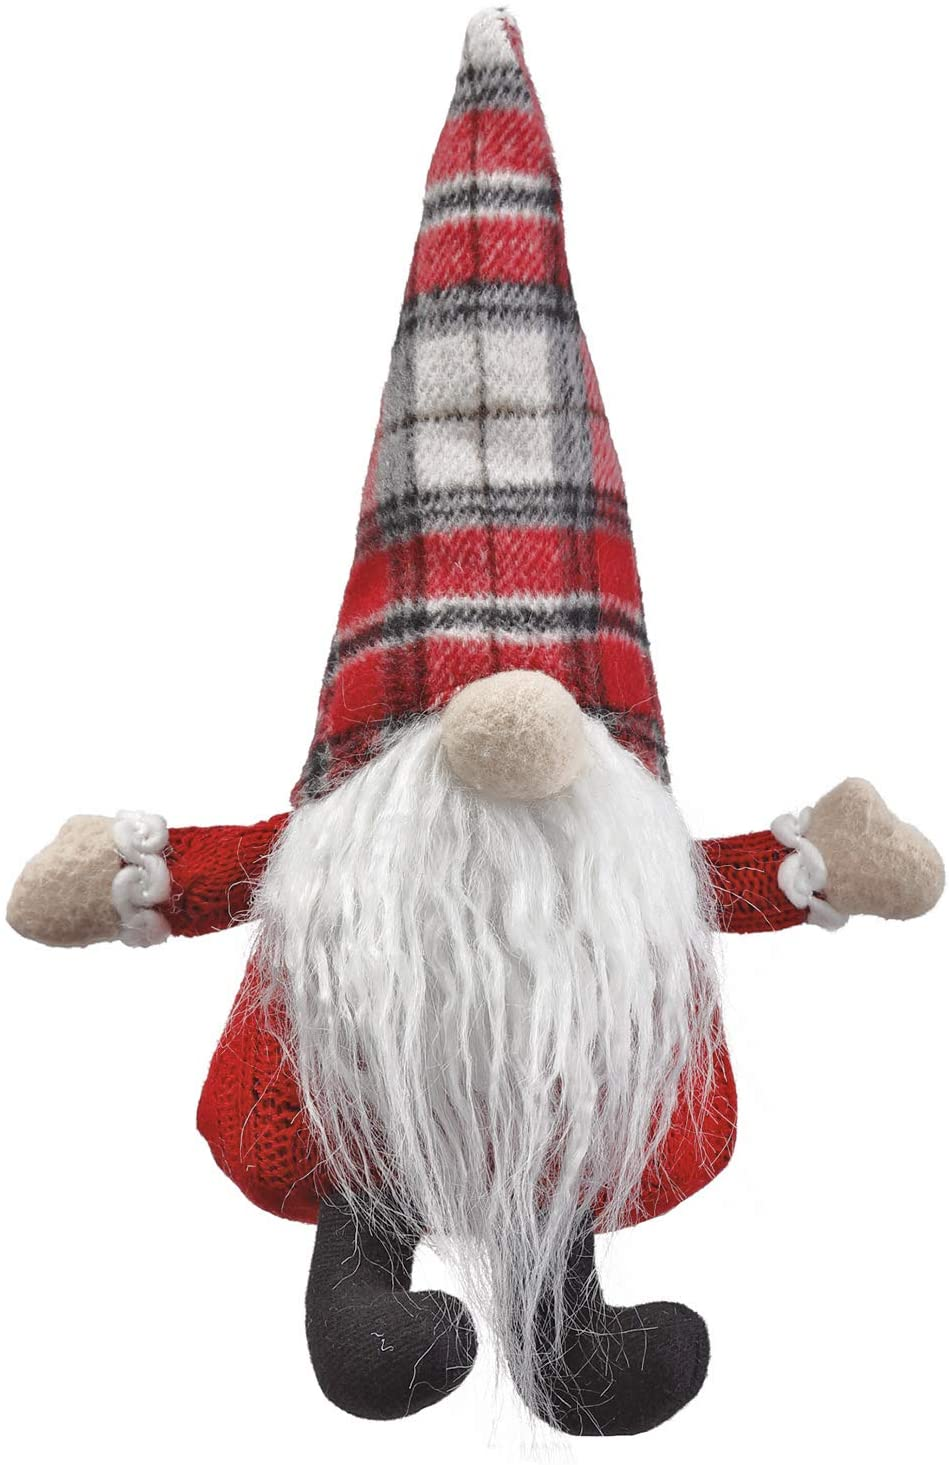 9 Inch Santa Christmas Gnome Shelf Sitter, Plush Gnome with Red Plaid Cap